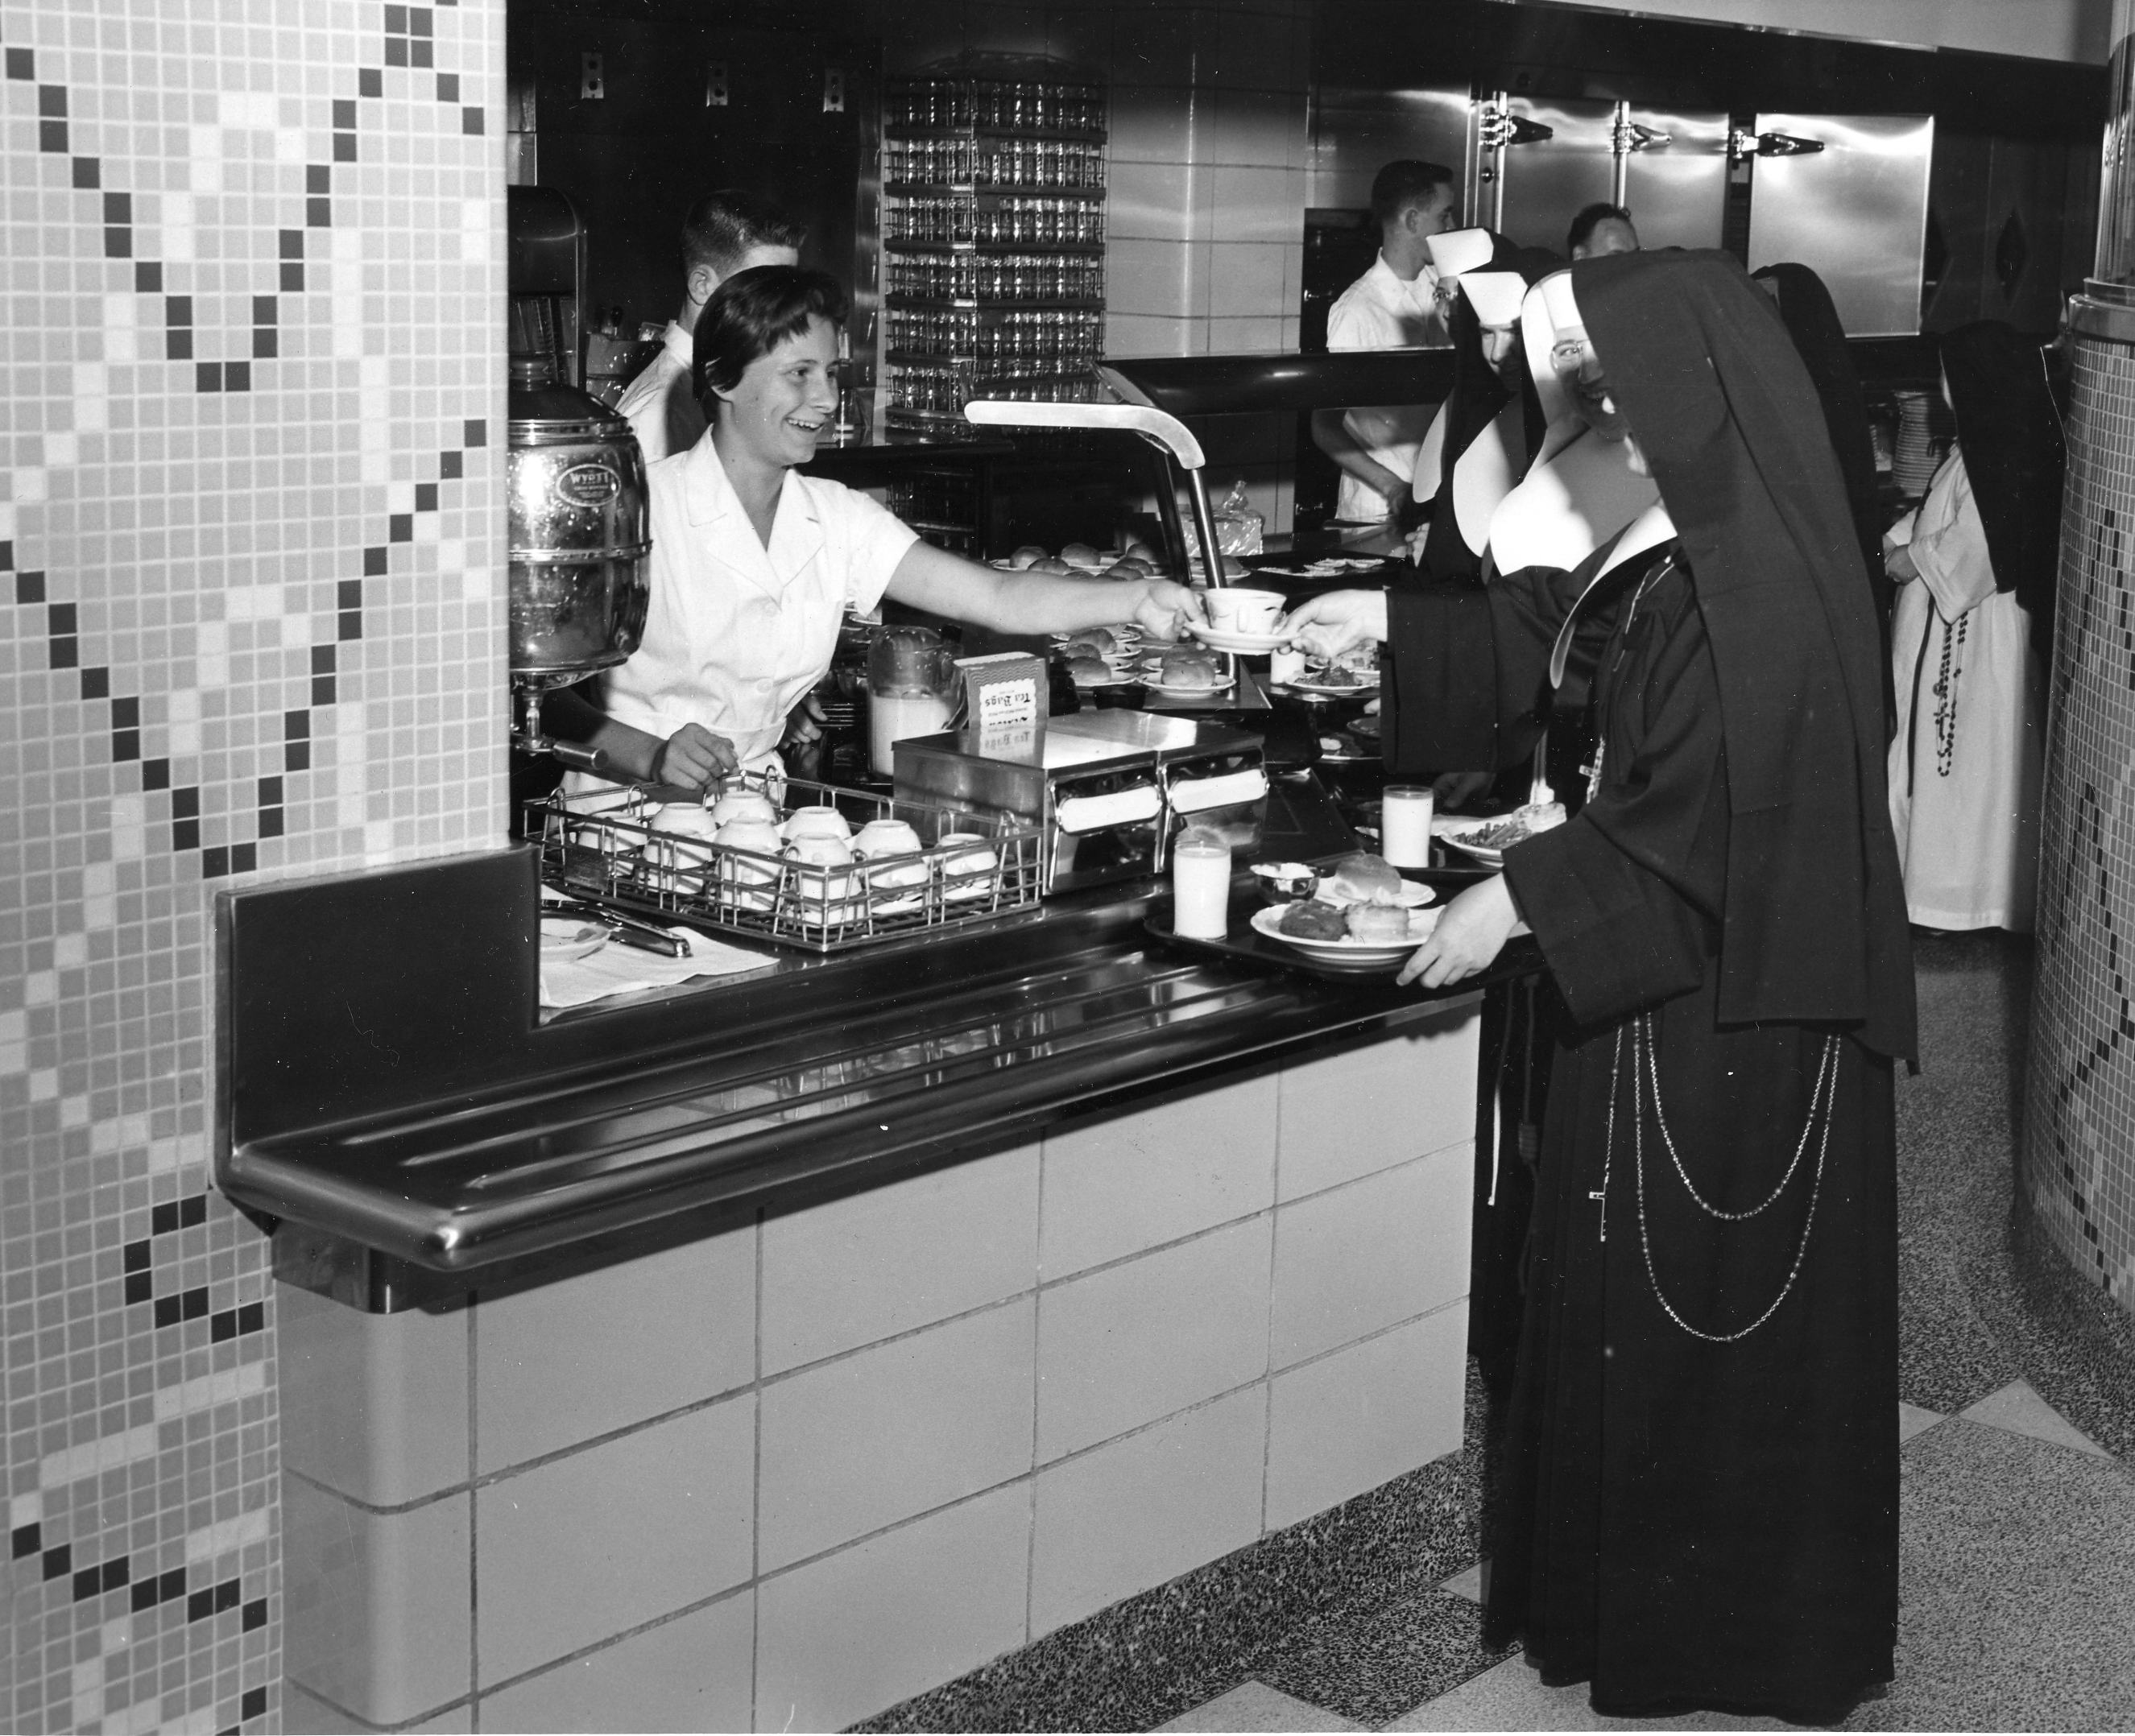 Sisters are served Cafeteria style